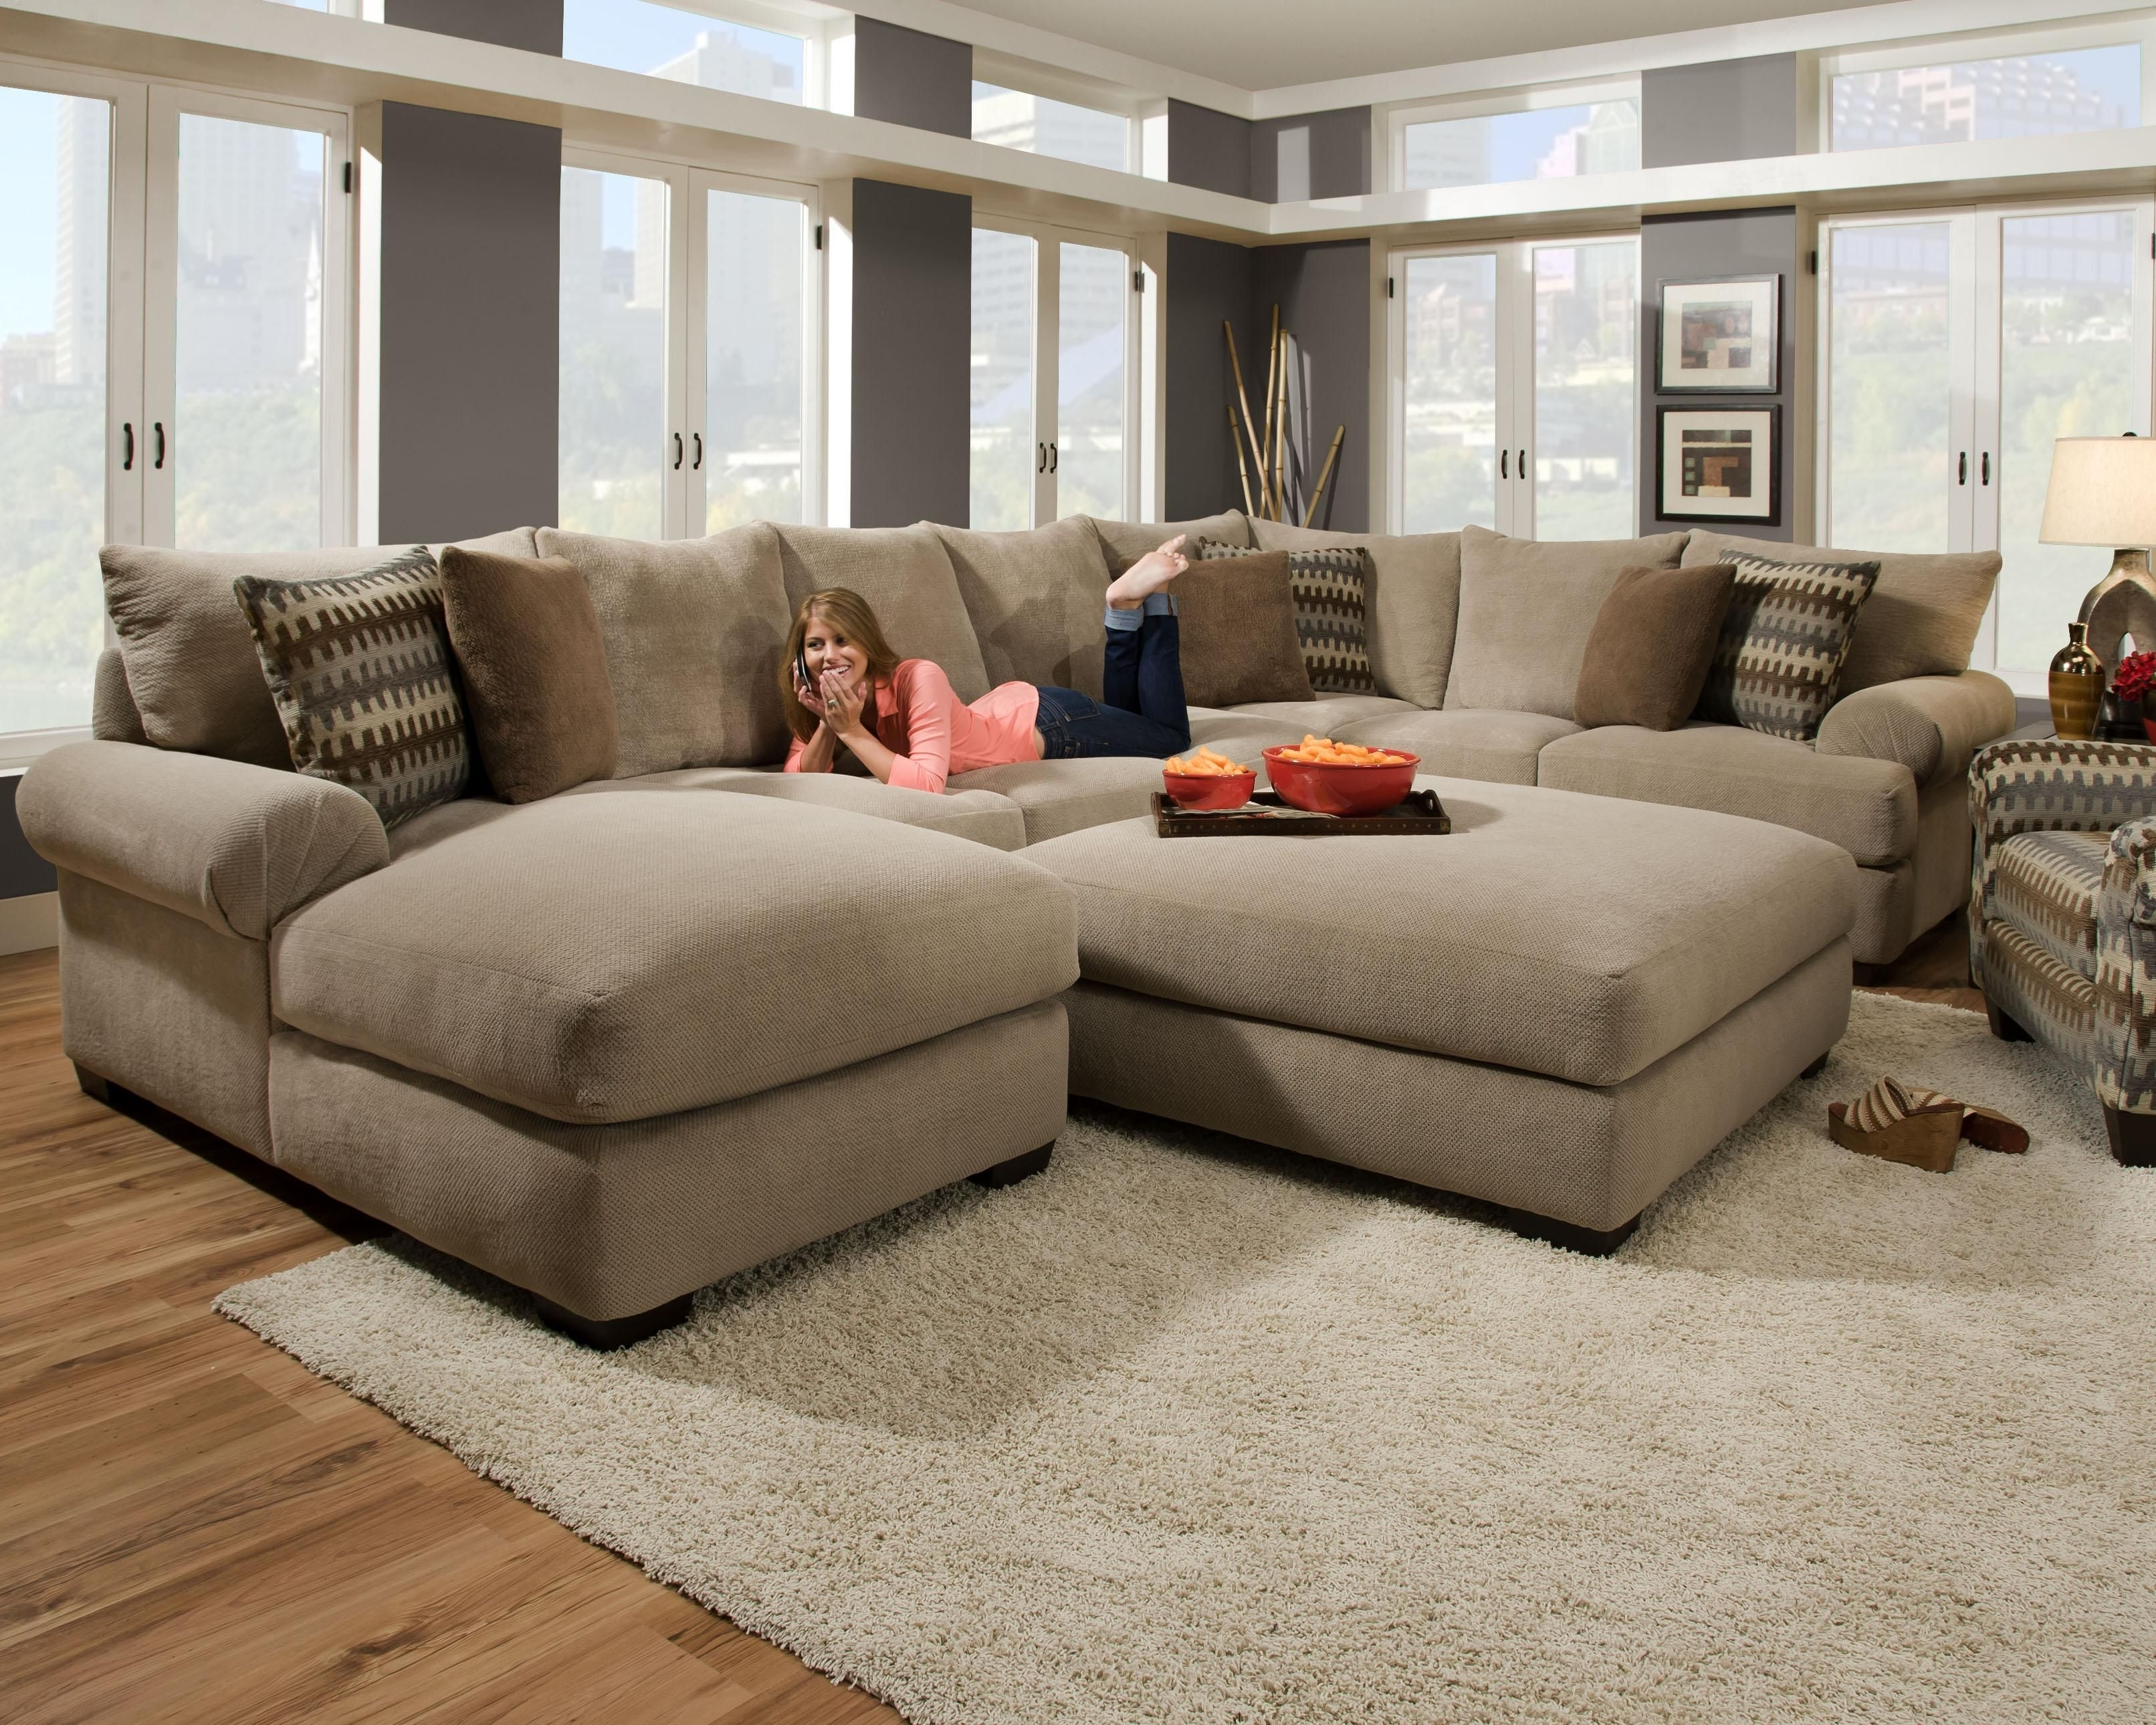 Furniture Design Idea For Living Room And Oversized U Shaped Intended For Well Known Big U Shaped Sectionals (View 11 of 15)